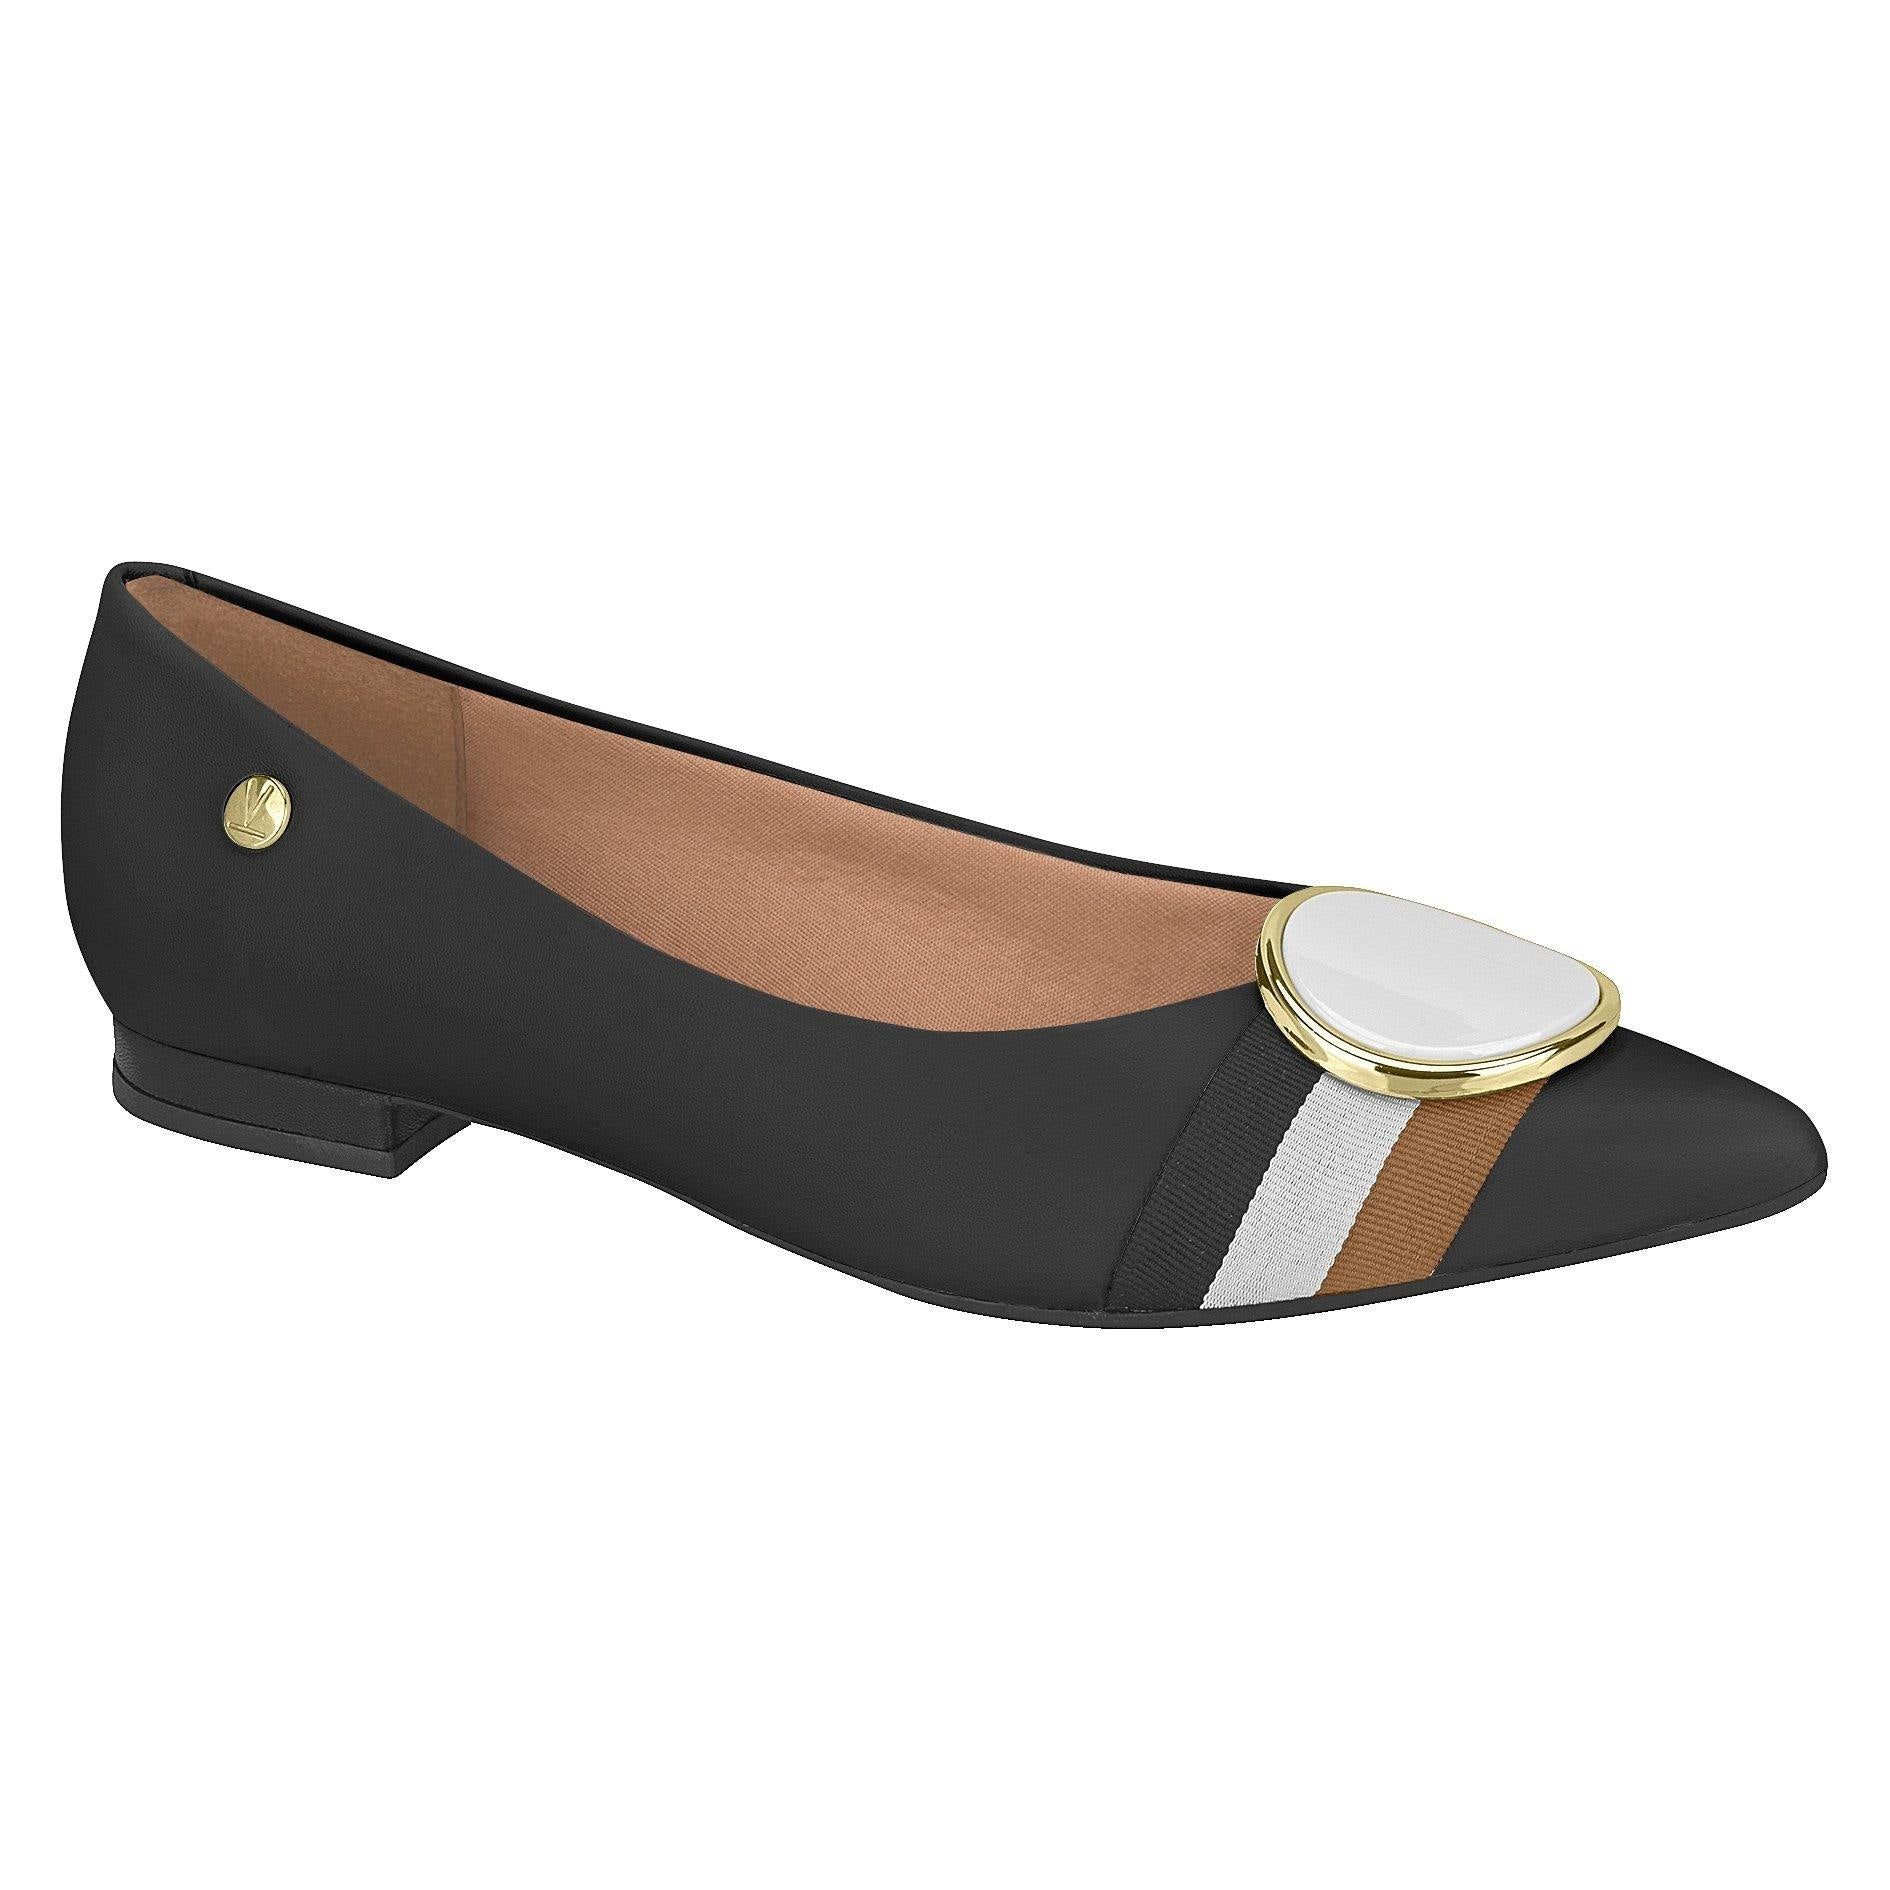 Vizzano 1206-262 Pointy Toe Flat in Black Napa